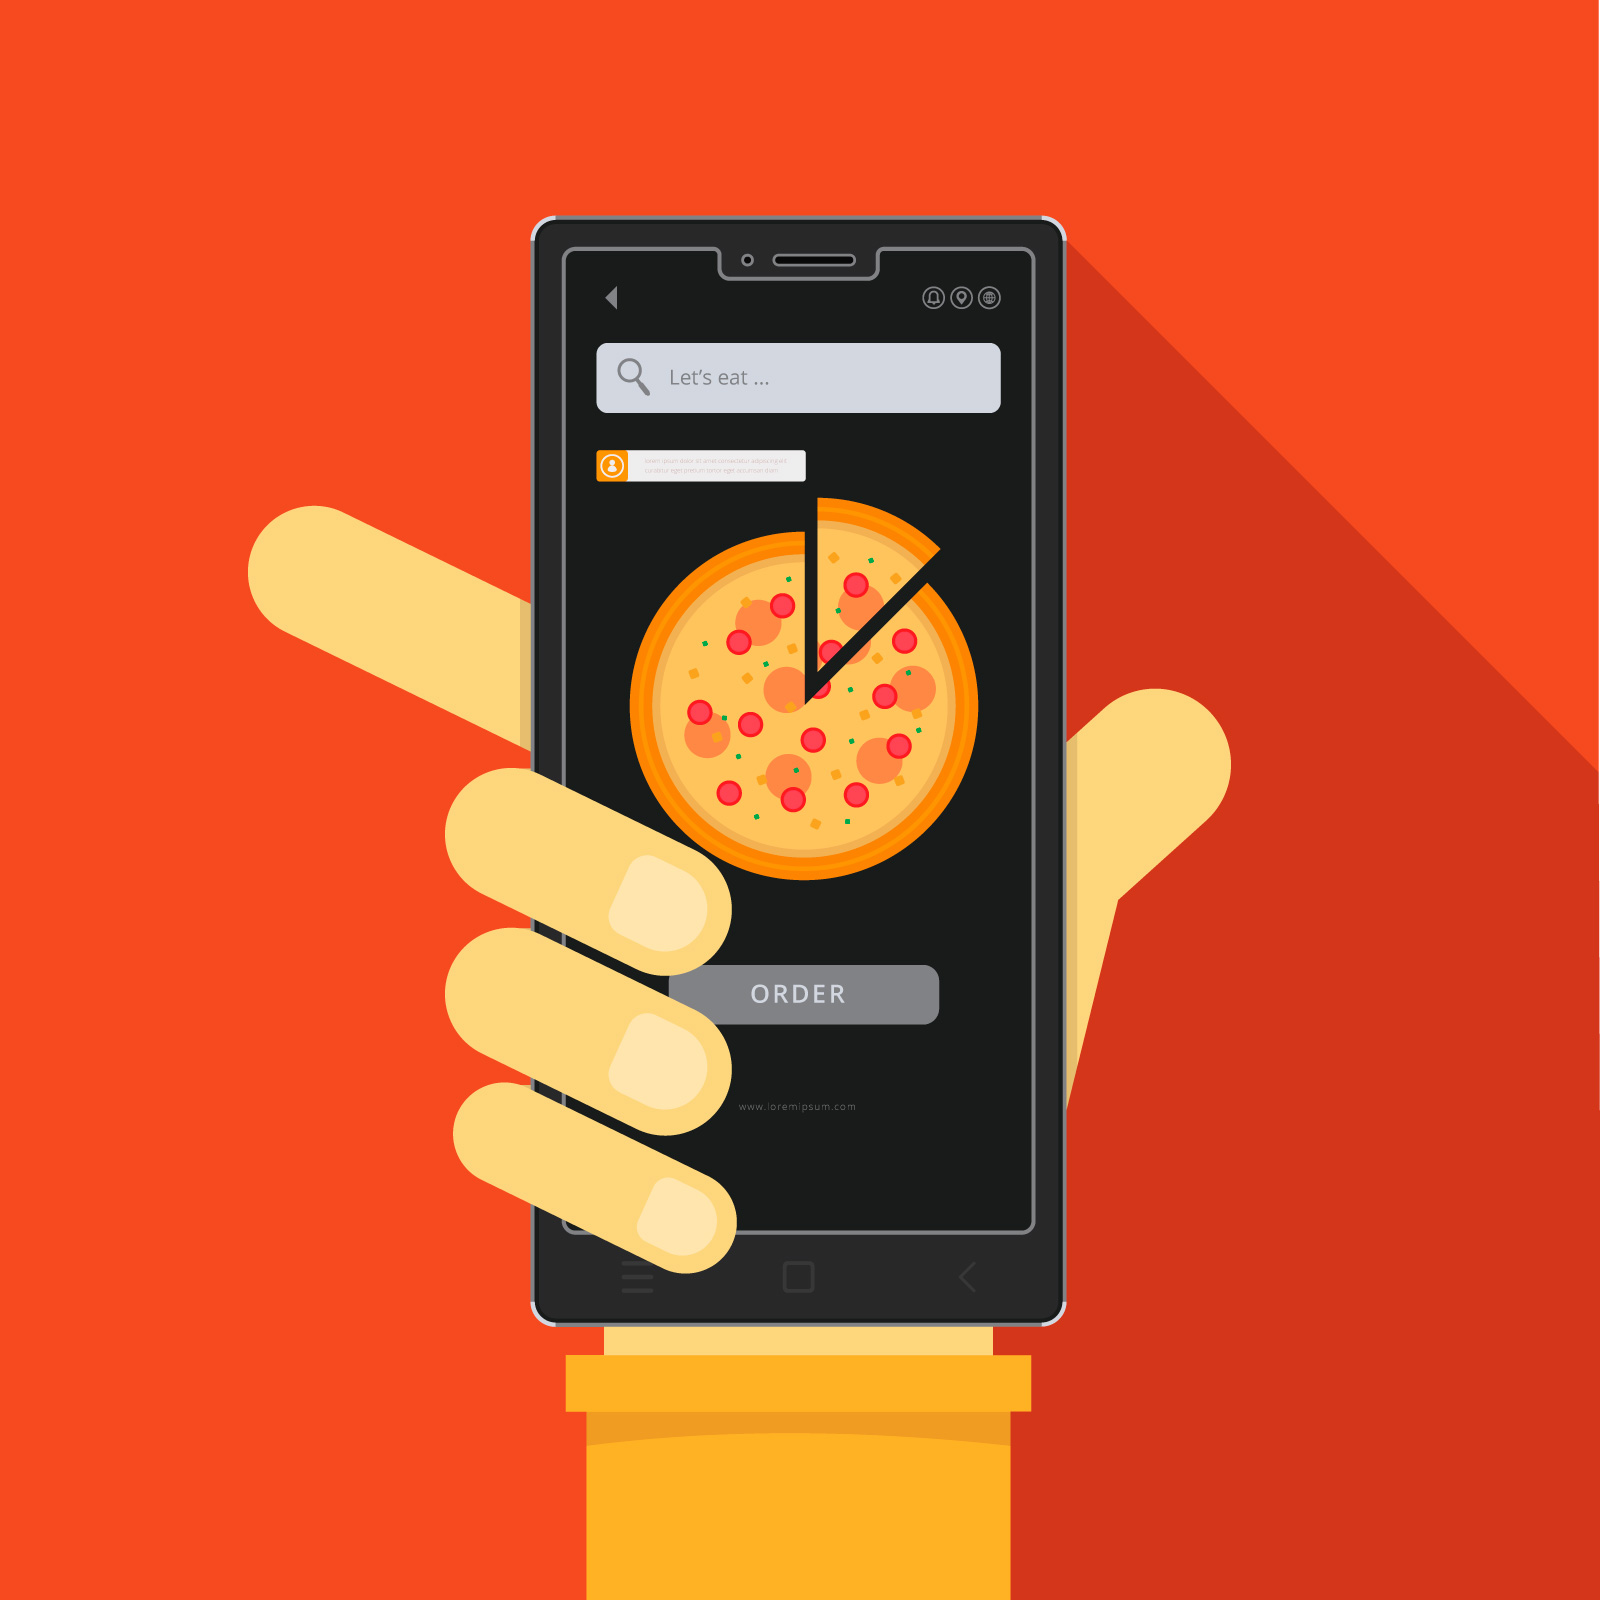 Food App Icon For Food Mobile Order Download Free Vector